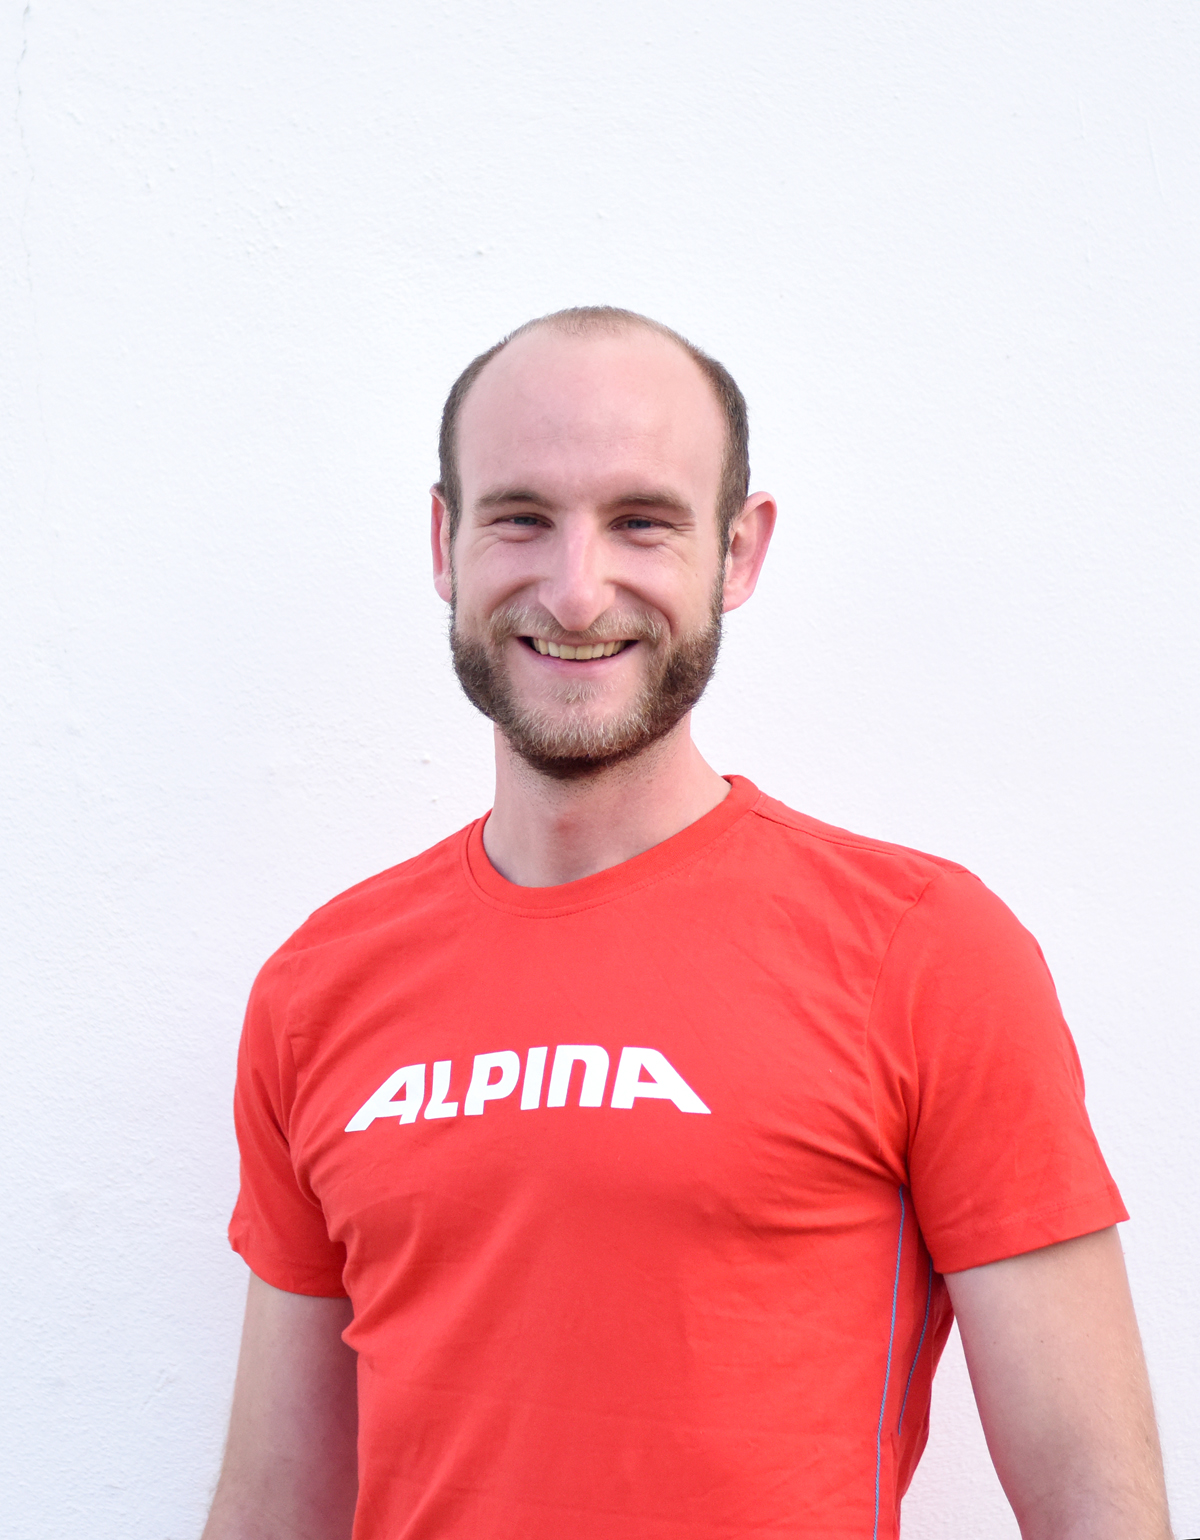 Marketing bei der ALPINA Sports GmbH: Ludwig Bestler